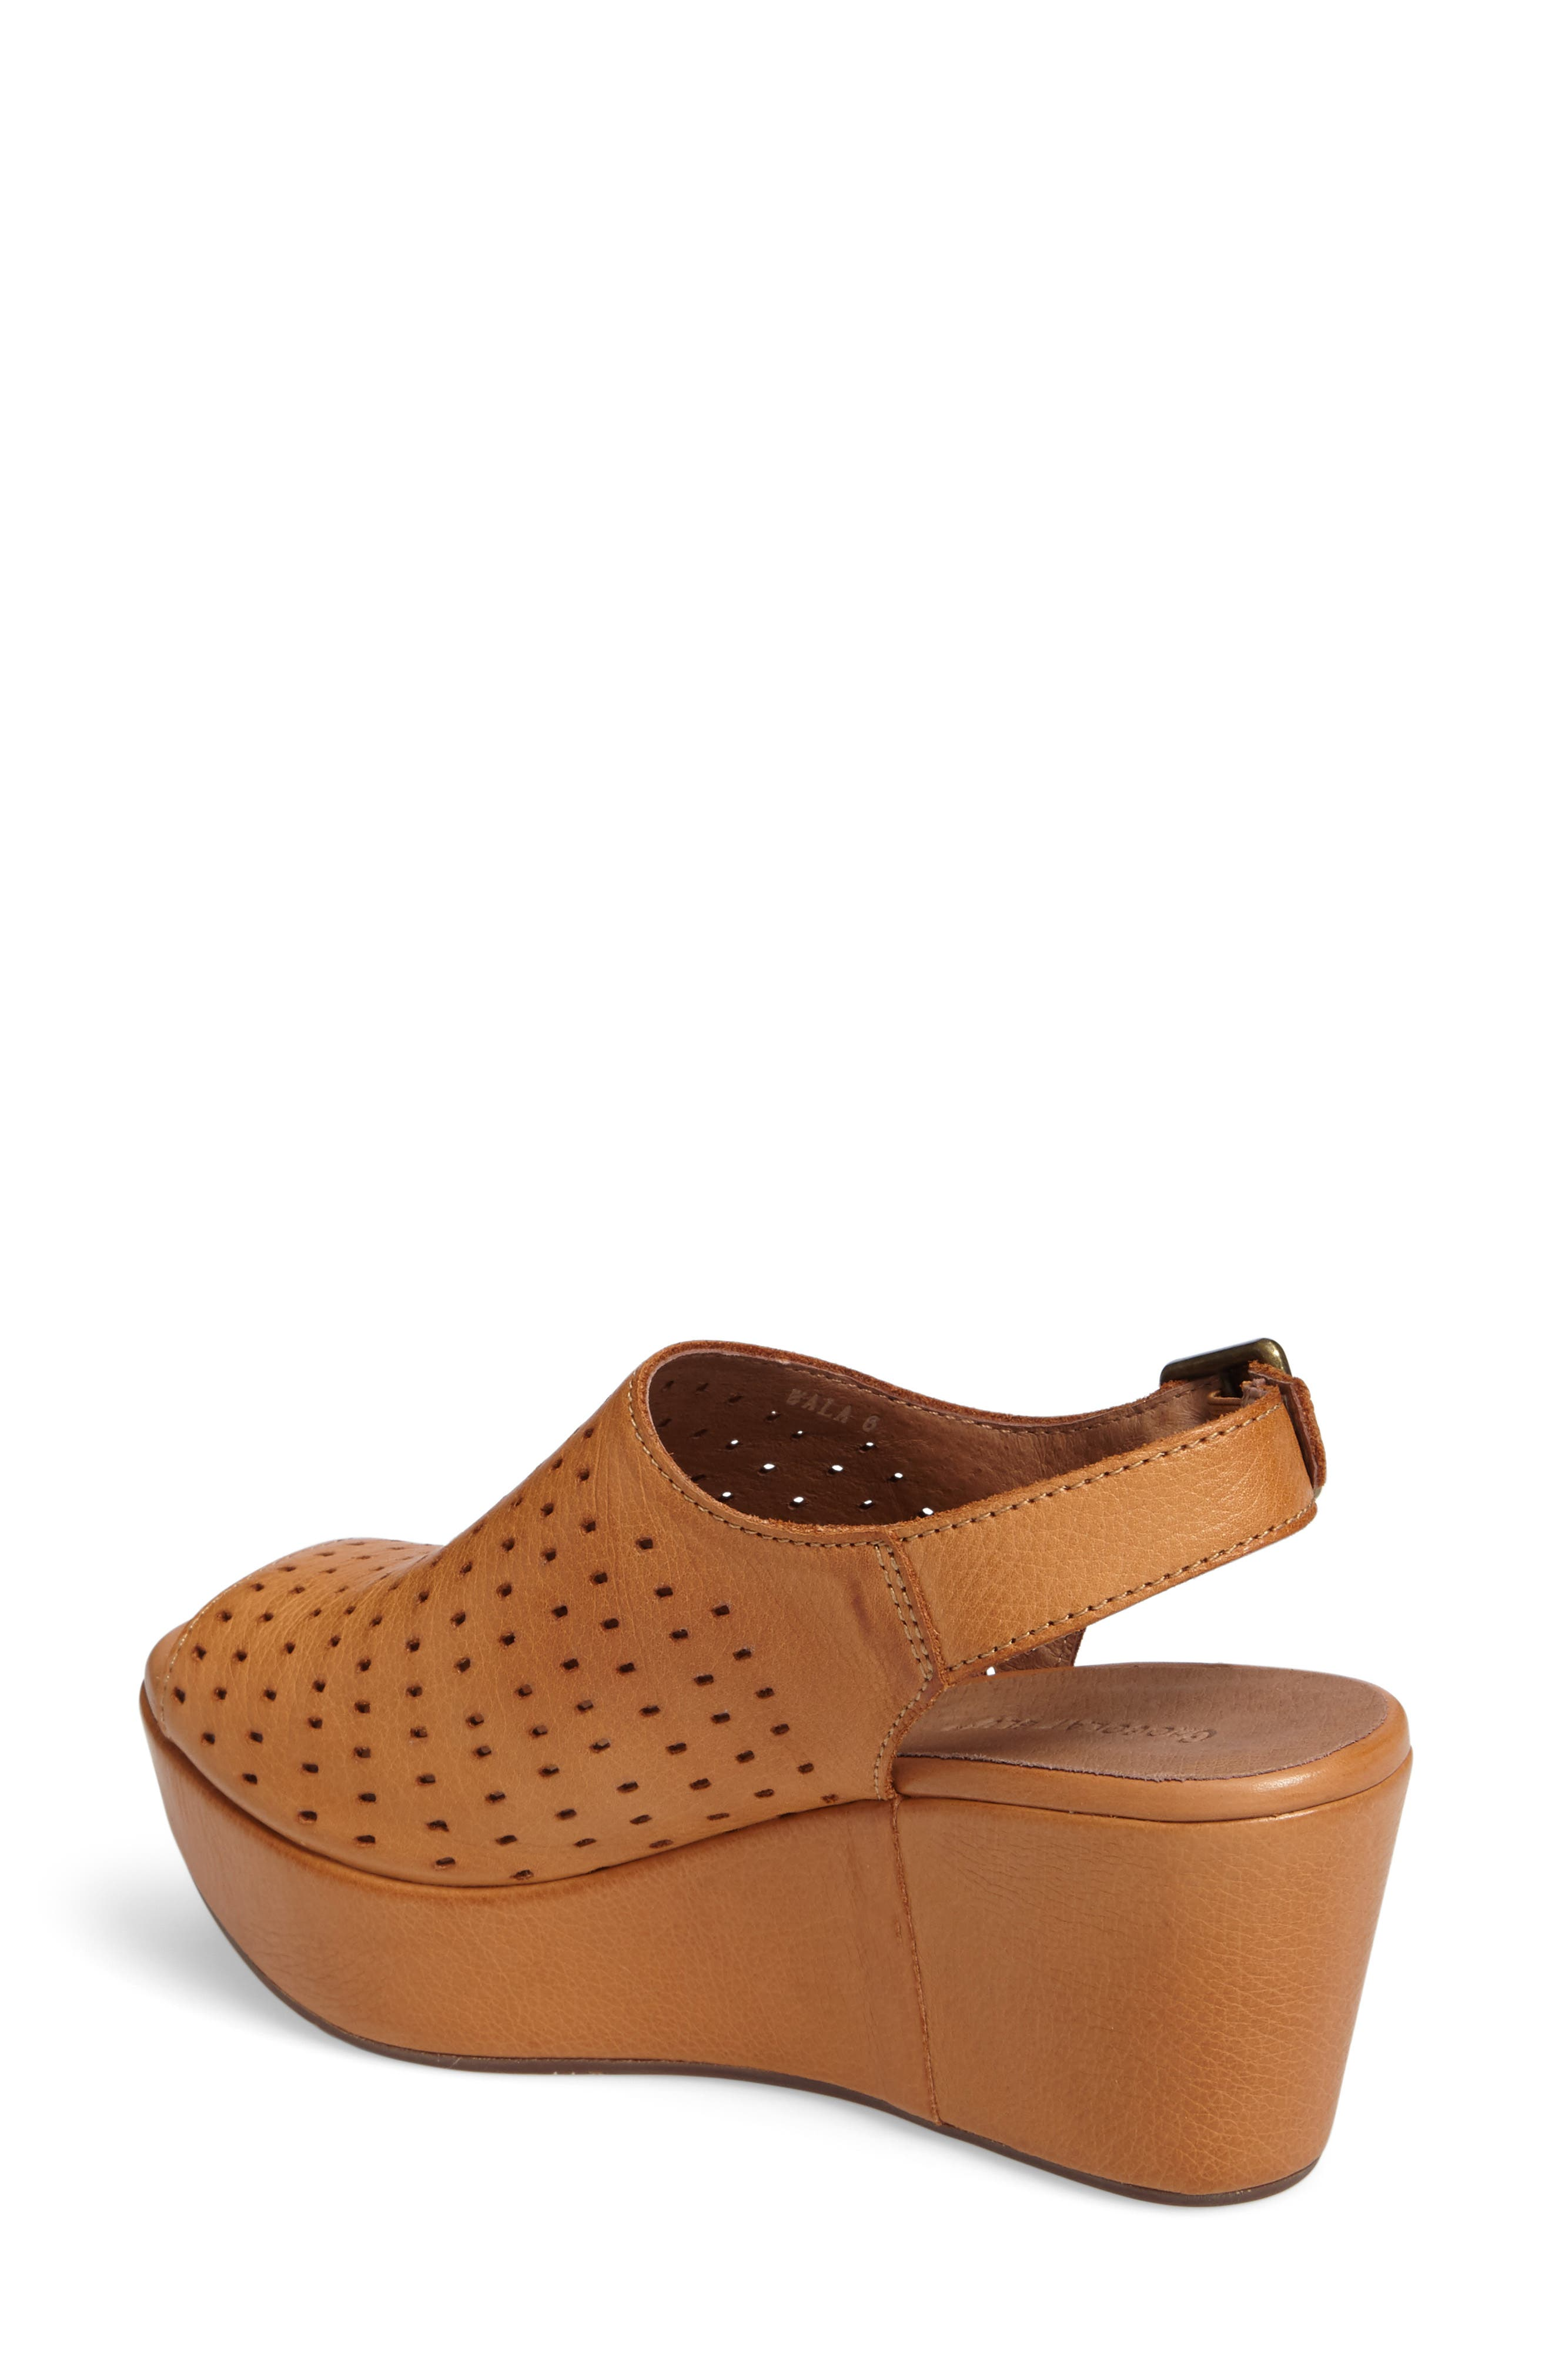 Wala Perforated Wedge Sandal,                             Alternate thumbnail 2, color,                             200